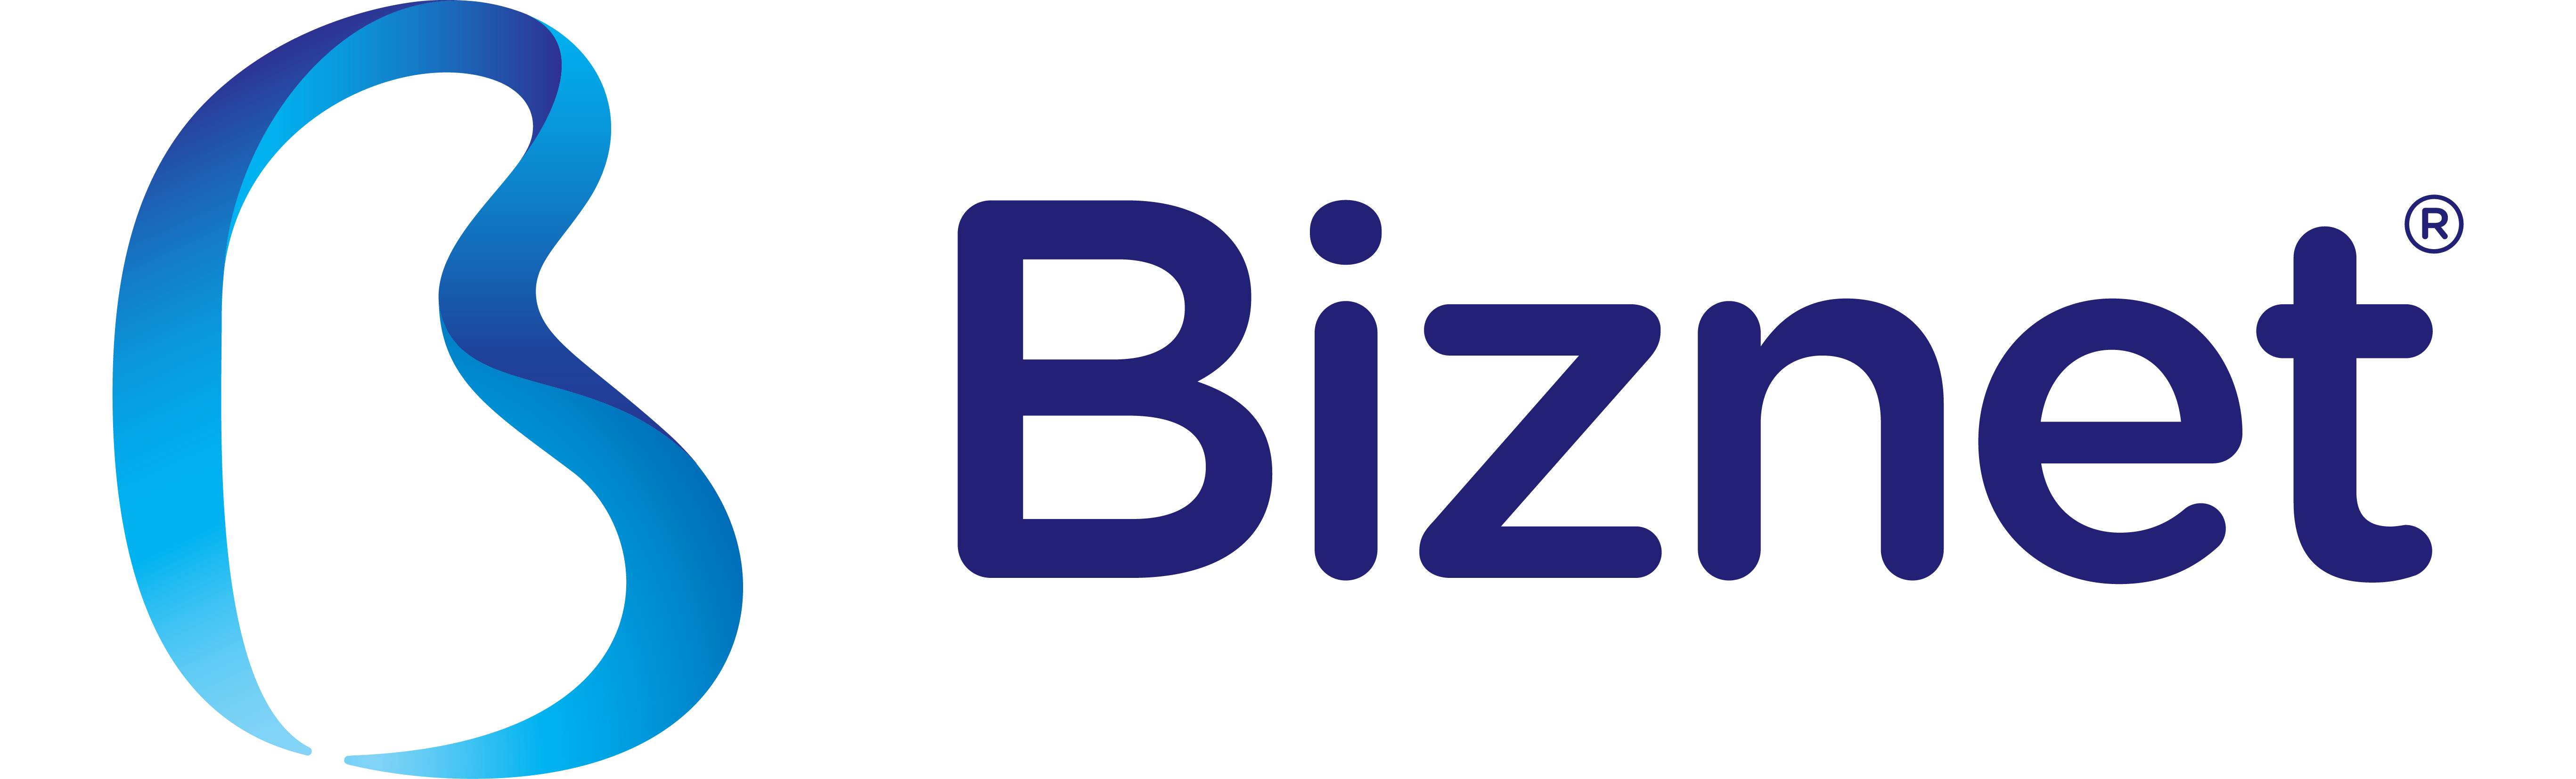 How to Bypass Connection for Biznet Dedicated Internet